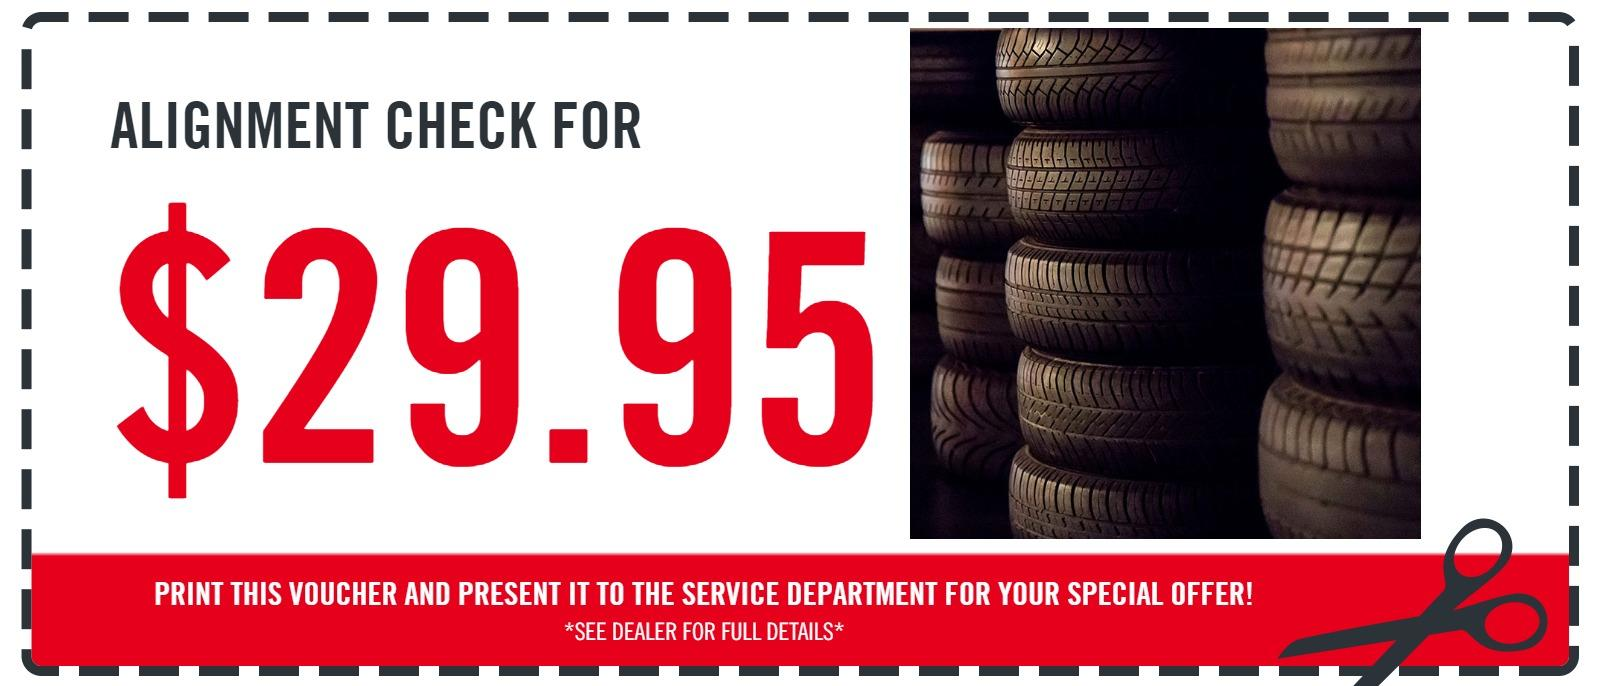 Alignment Check for $29.95